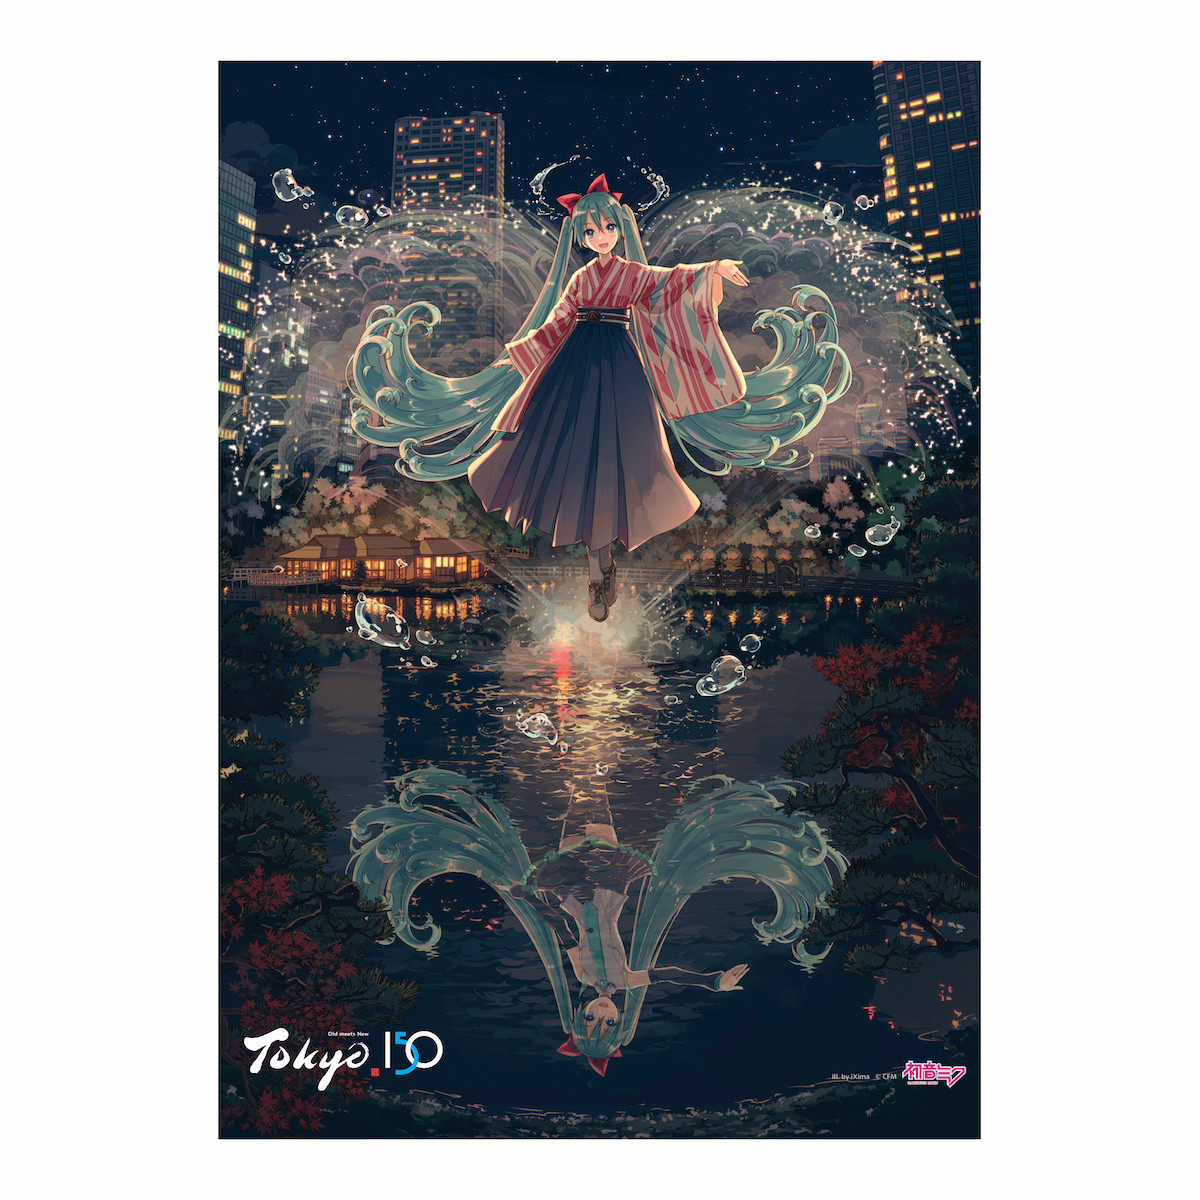 0667ca71f8cce9 Hatsune Miku x Tokyo 150 Years Festival Collaboration Tapestry ...